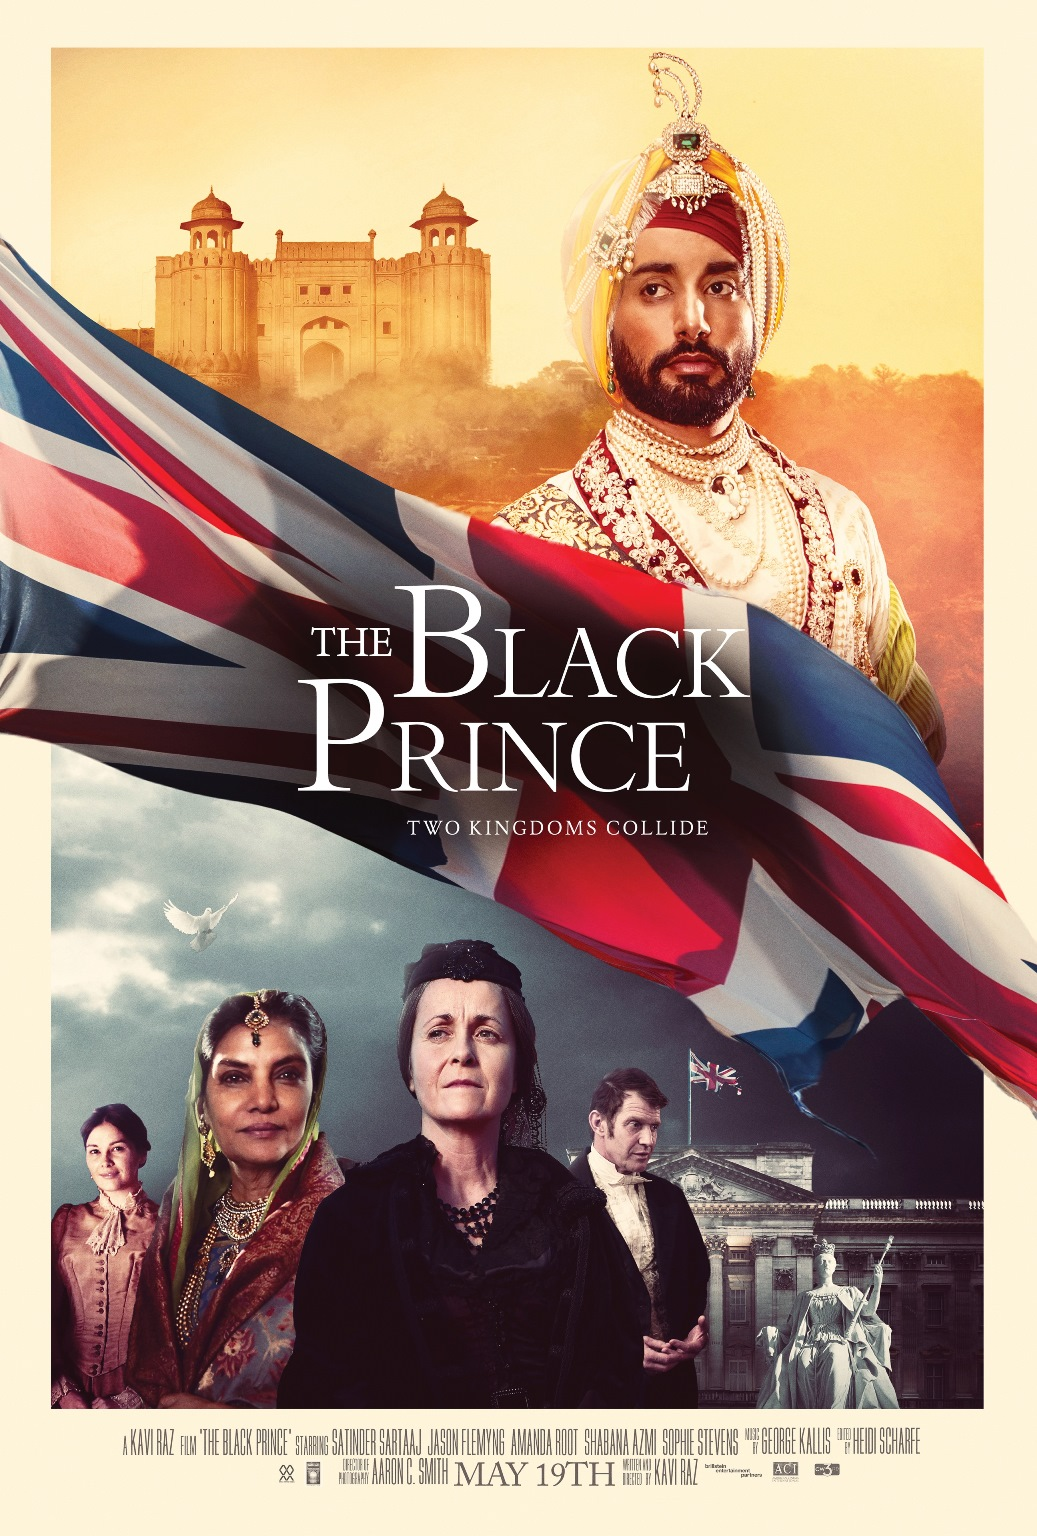 The Black Prince gets set for UK premieres